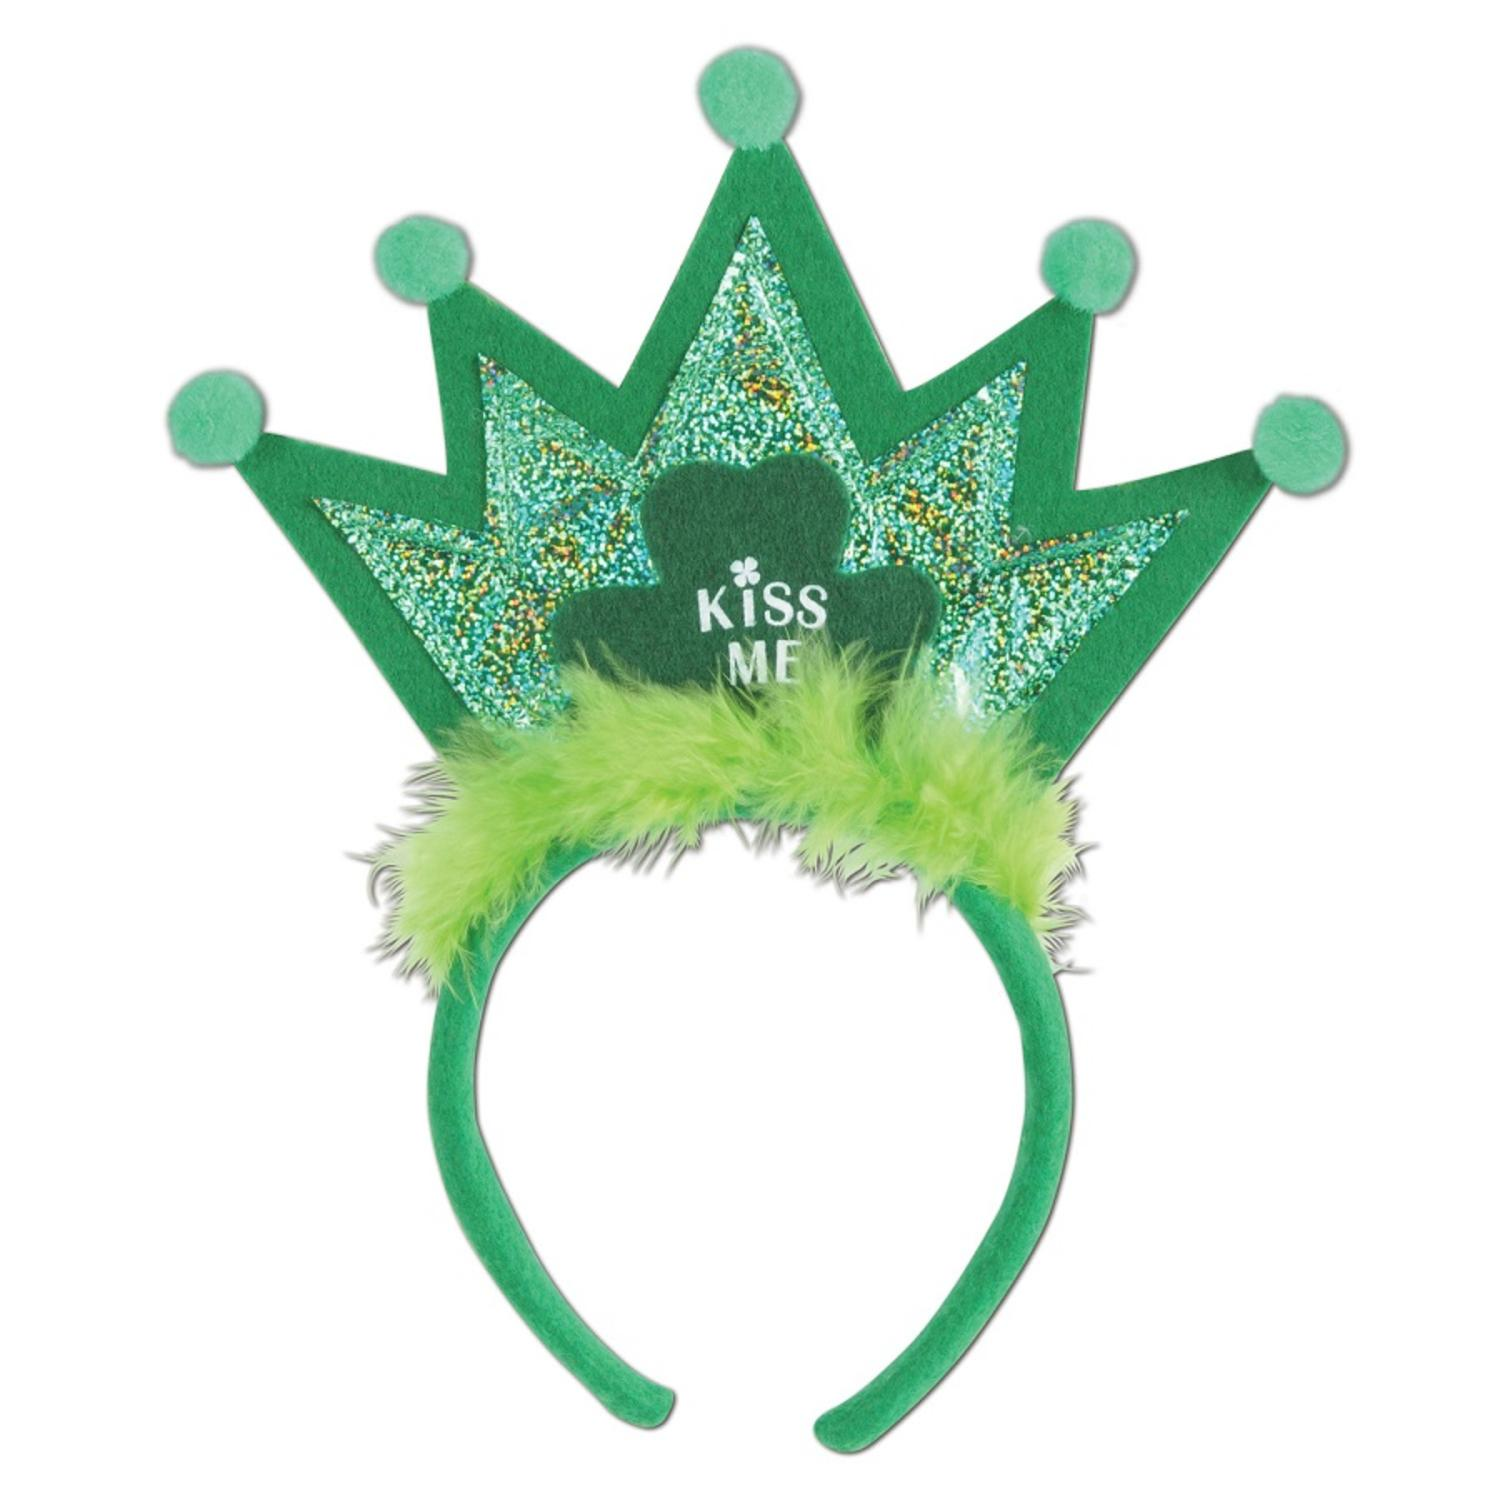 Club Pack of 12 St. Patrick's Day Green Shamrock Tiara Headband Costume Accessories